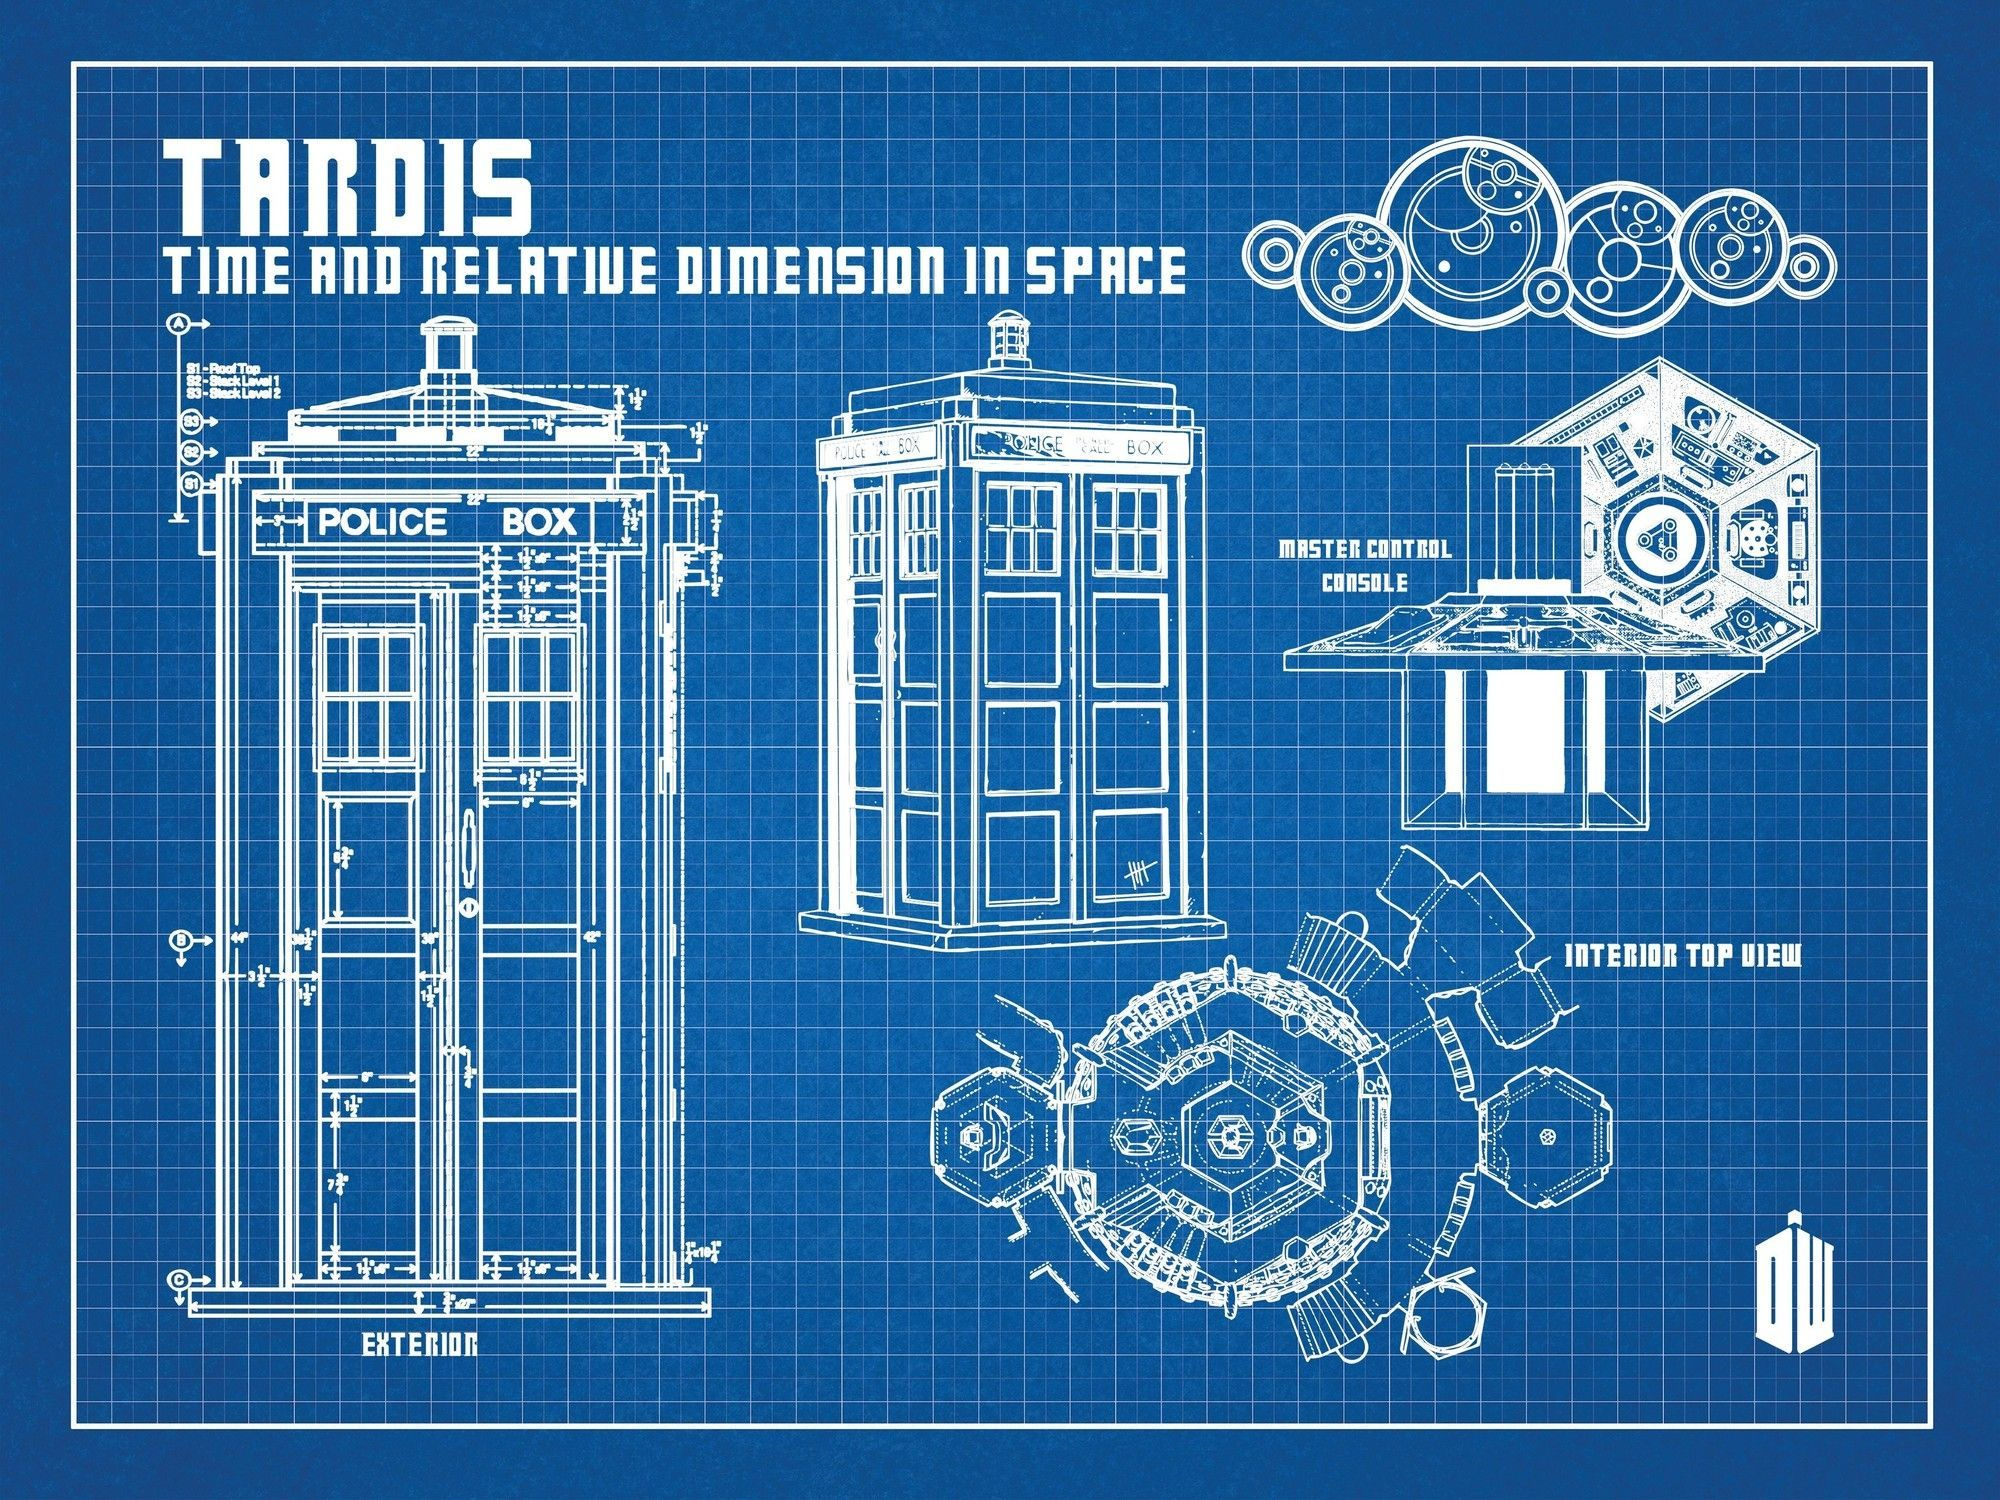 Doctor who tardis blueprint graphic art tardis geek stuff and doctor who tardis blueprint graphic art poster in blue gridwhite ink malvernweather